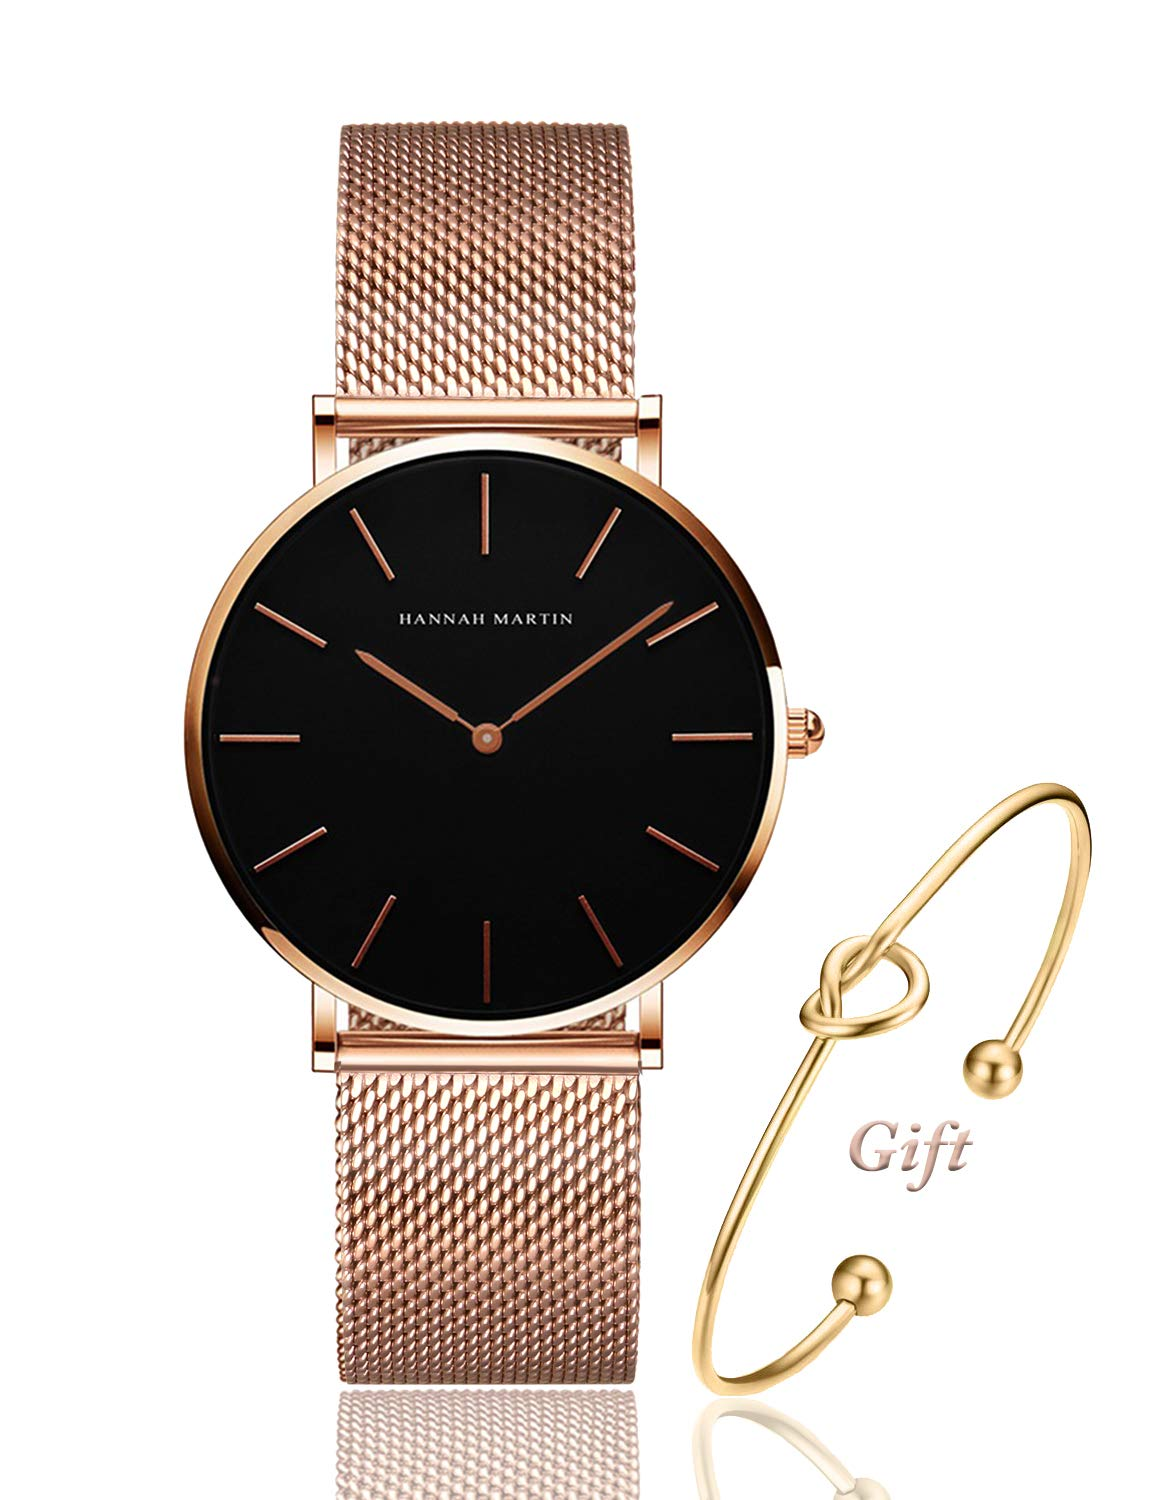 Women's Rose Gold Watch Analog Quartz Stainless Steel Mesh Band Casual Fashion Ladies Wrist Watches with Bracelet Gift (Black Dial)